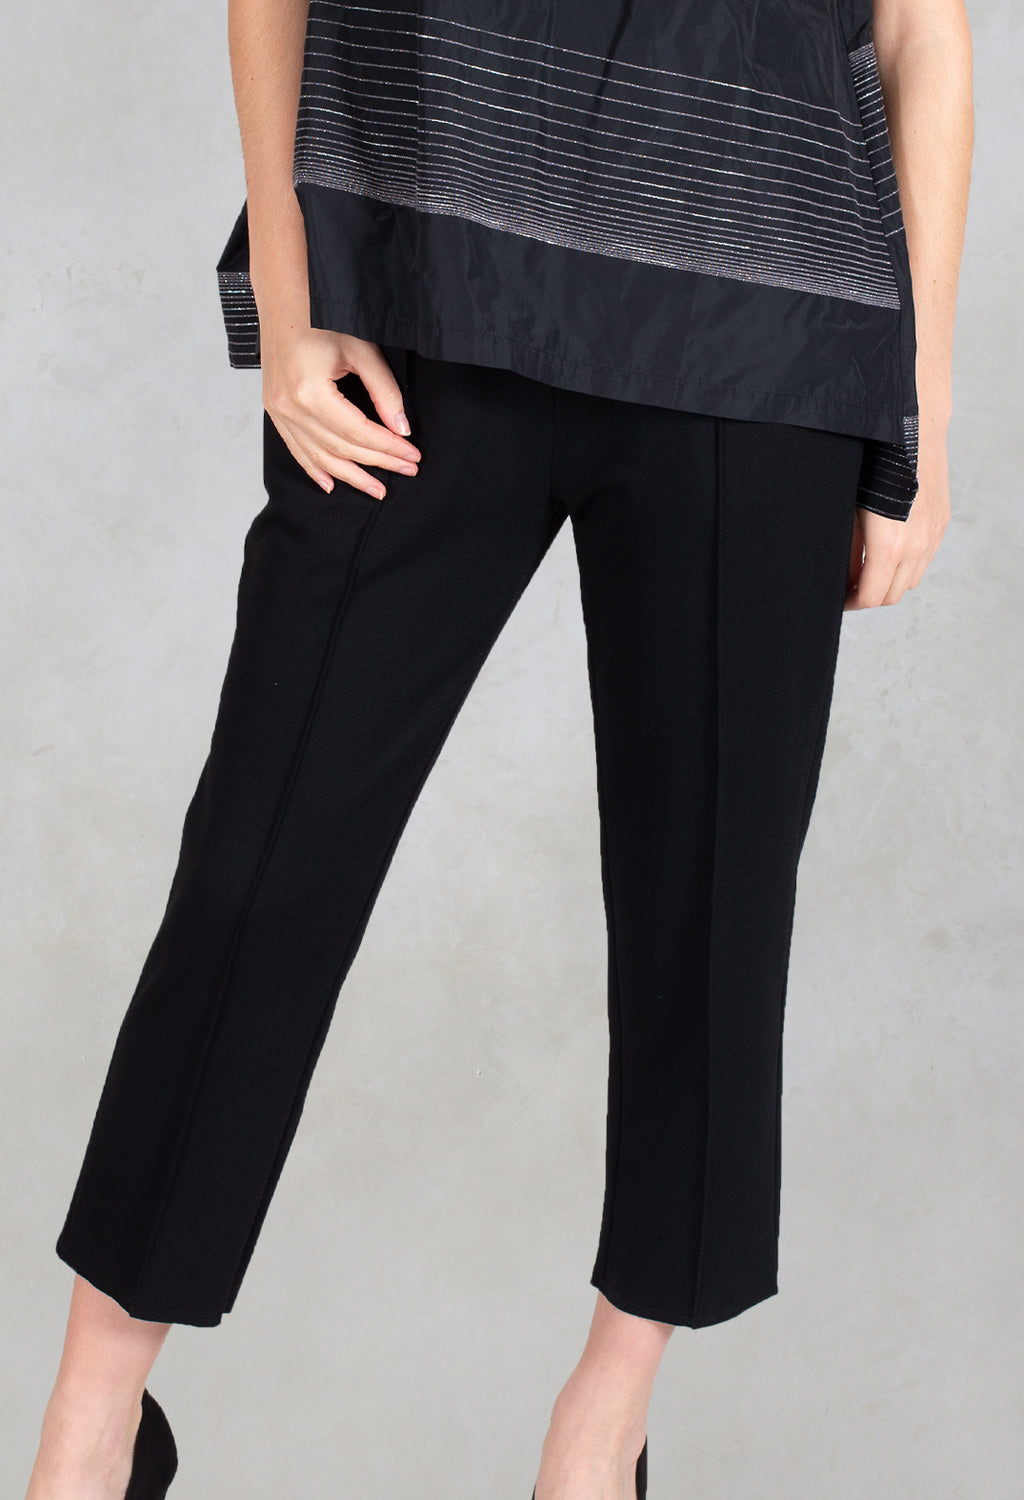 Cropped Straight Leg Pants Akiz in Black